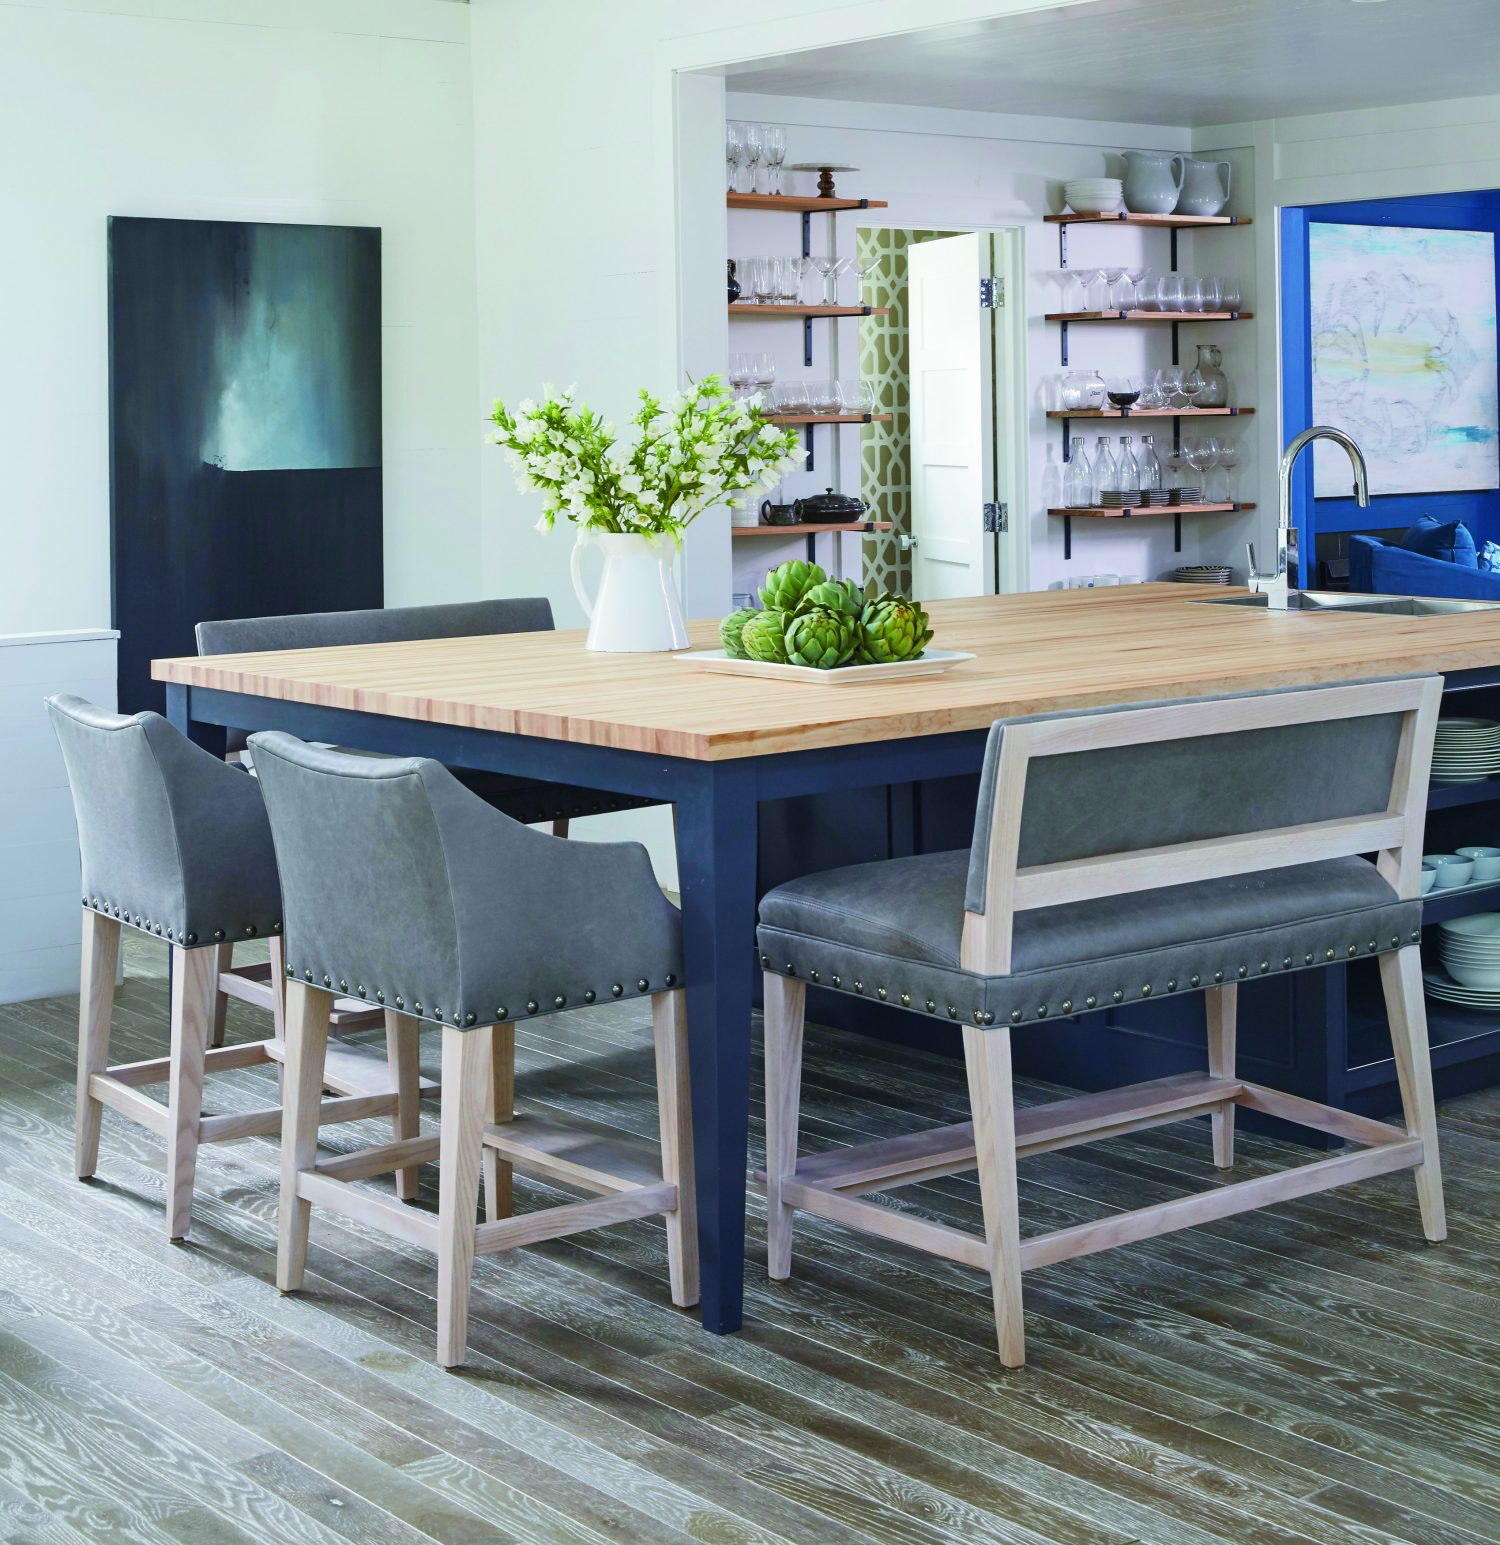 Kitchen Counter And Stools Peyton S Place Furniture Campaign Bar Stool Leather Lee Industries